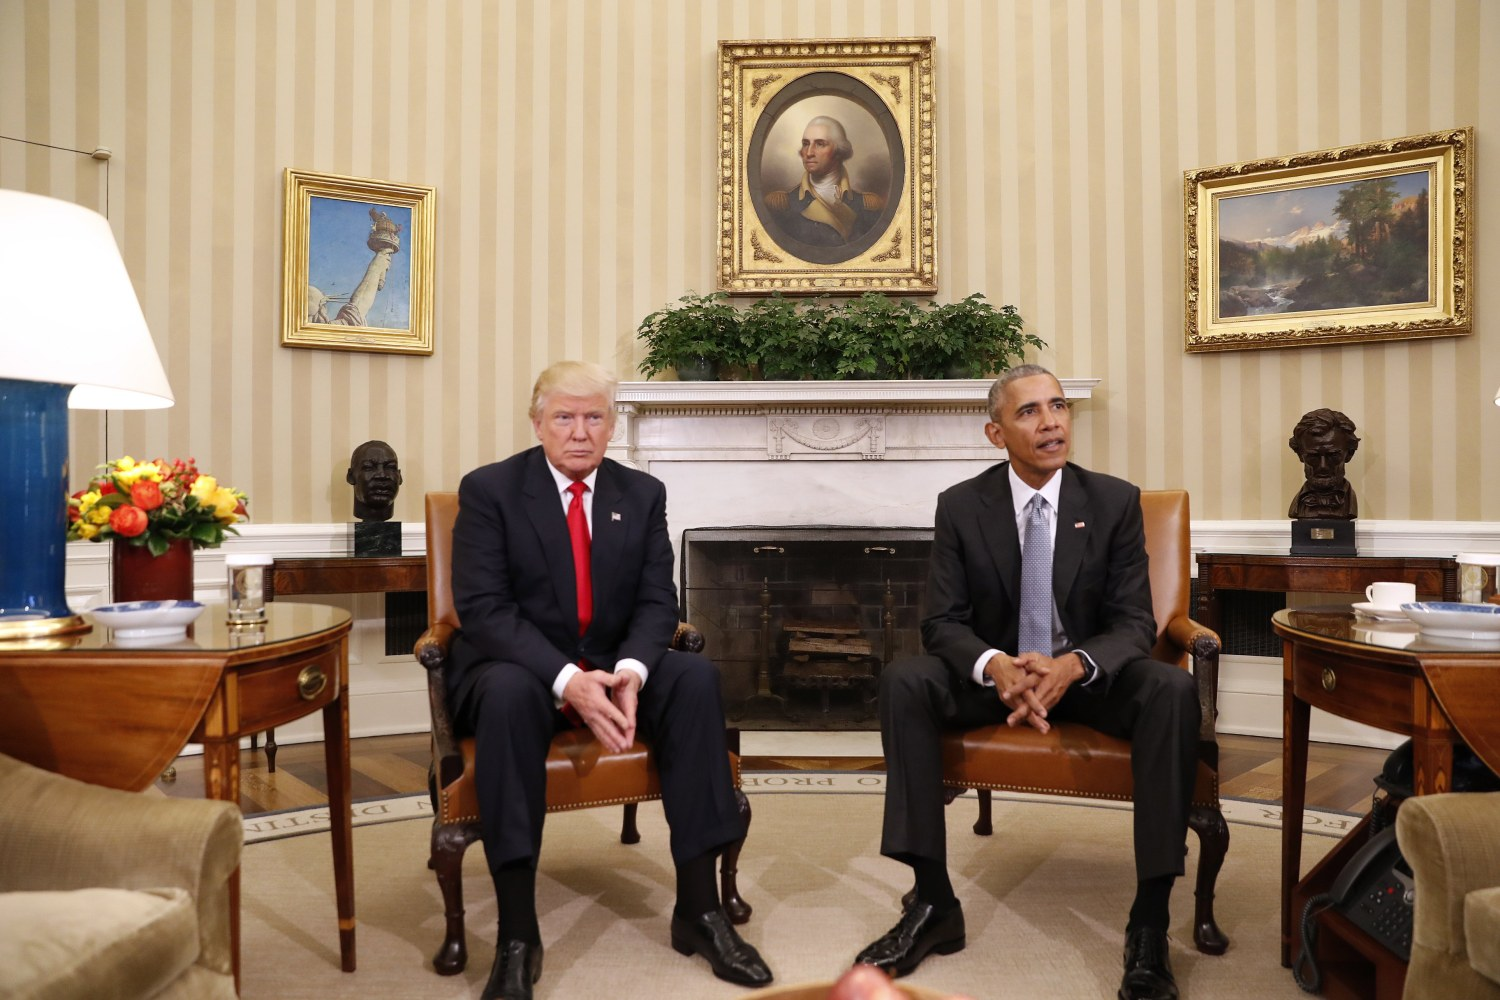 Obama Hosts Trump At White House For First Meeting After